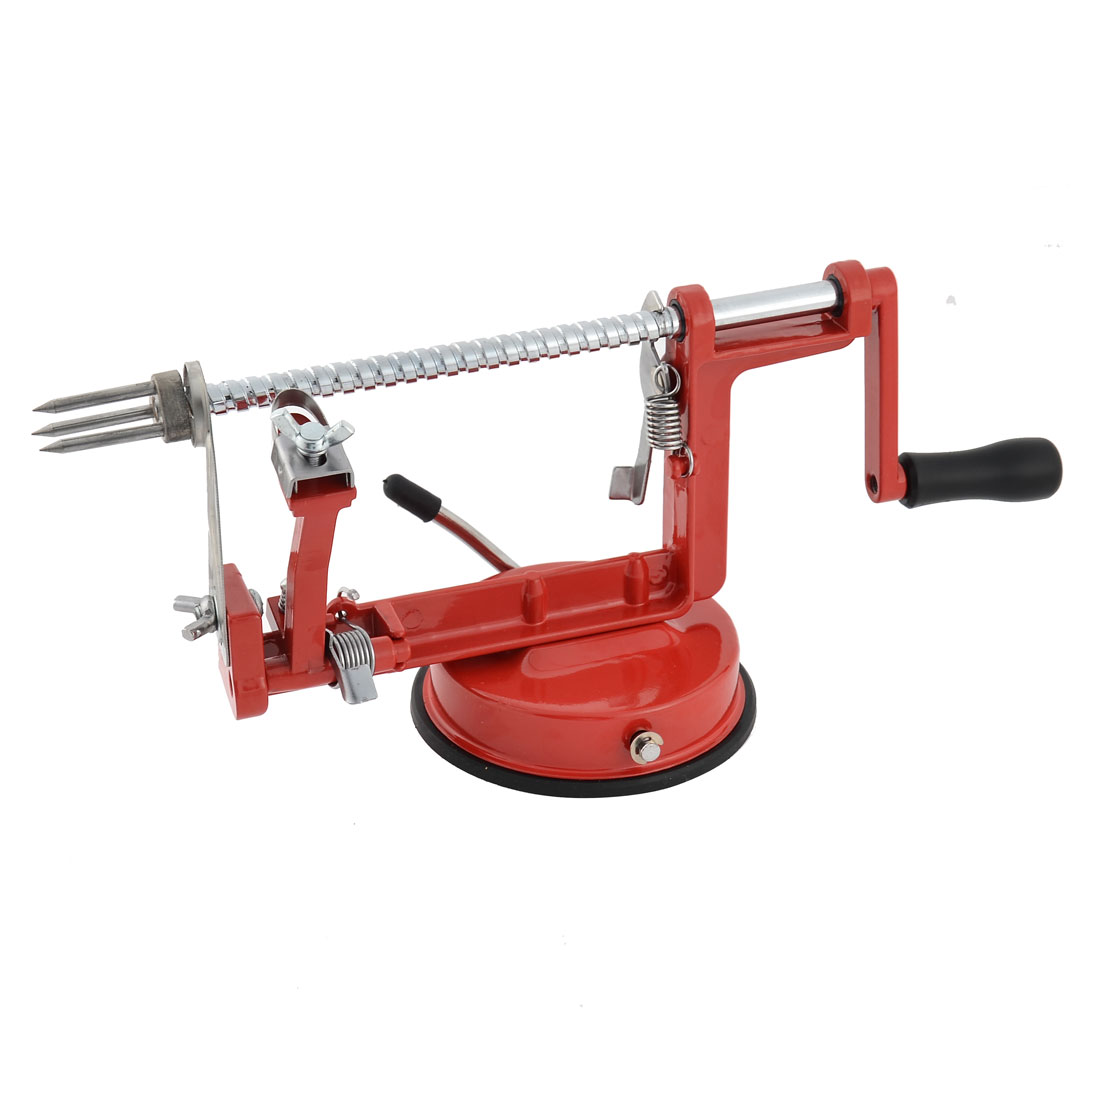 Home Kitchen Metal Apple Pear Fruit Vegetable Potato Peeler Corer Slicer Red